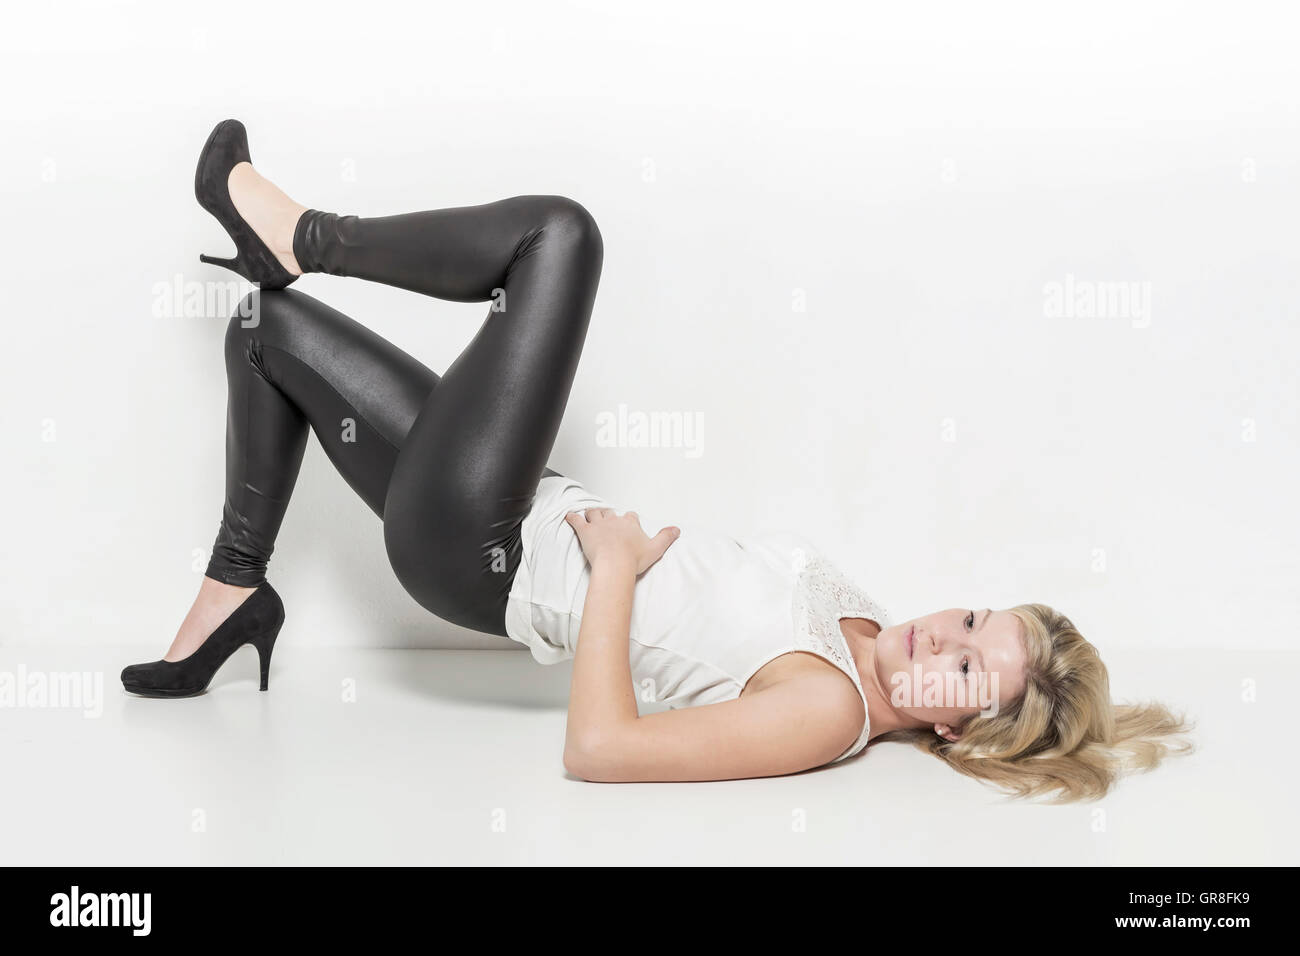 Elegant Styling Stock Photo